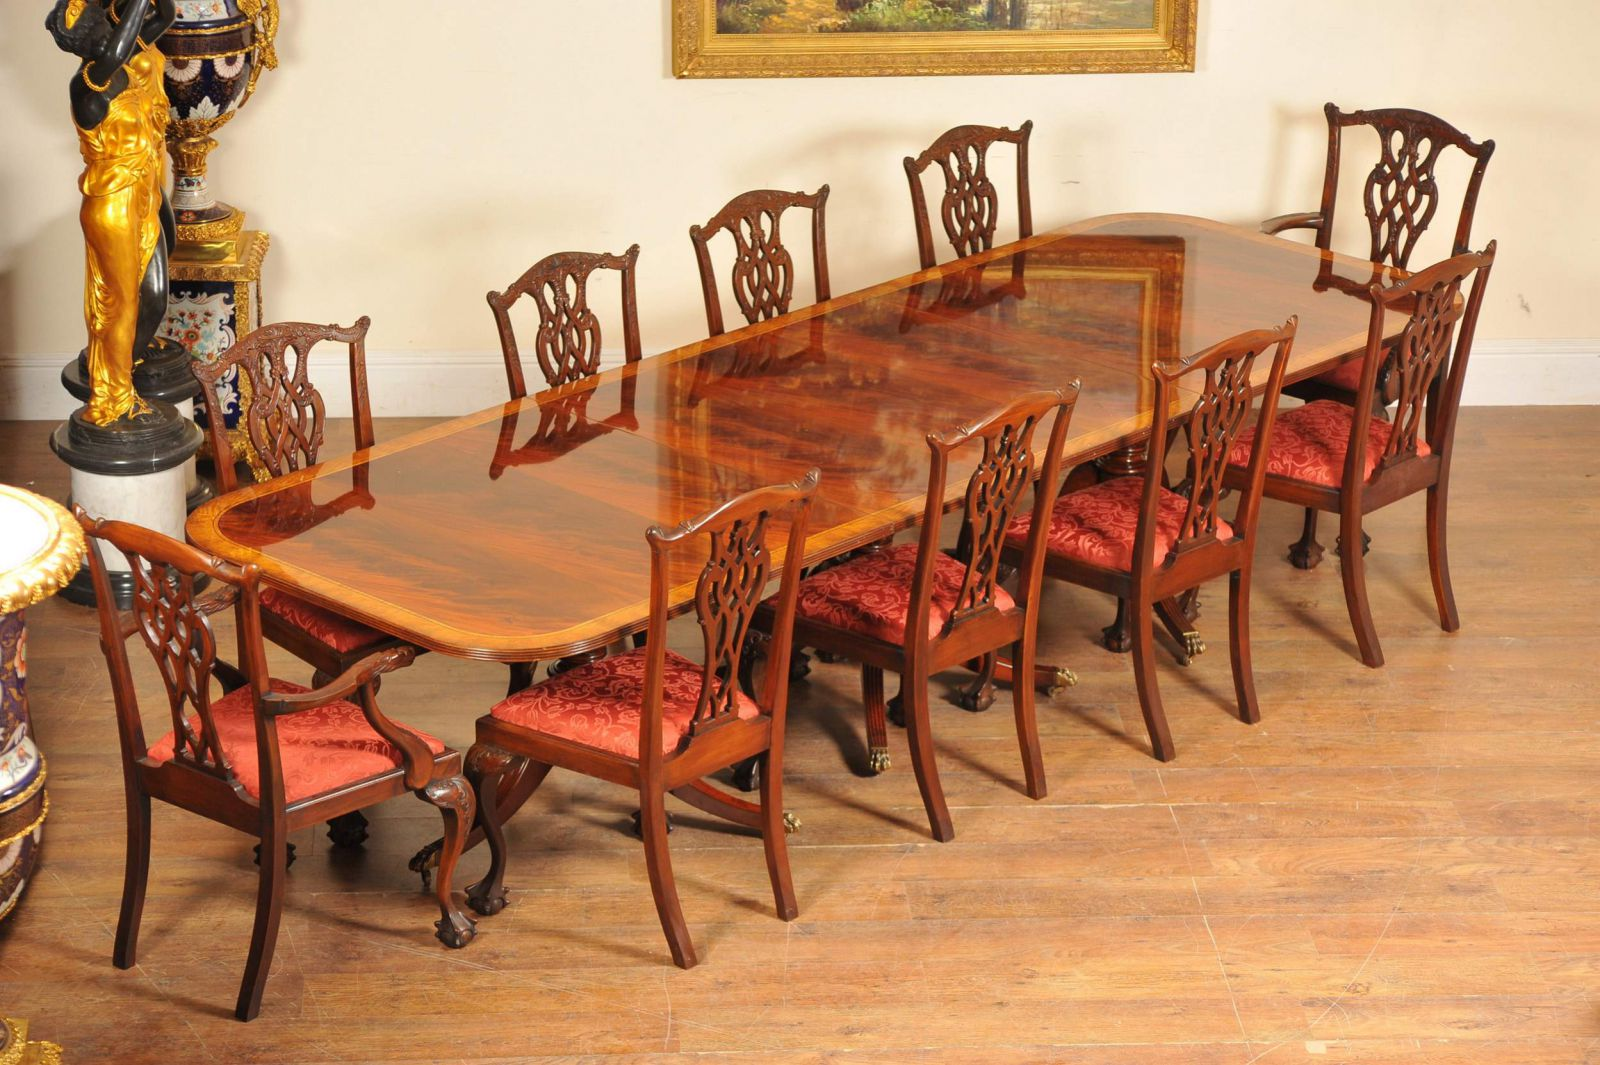 Flame mahogany Regency table and matching set of Chippendale chairs